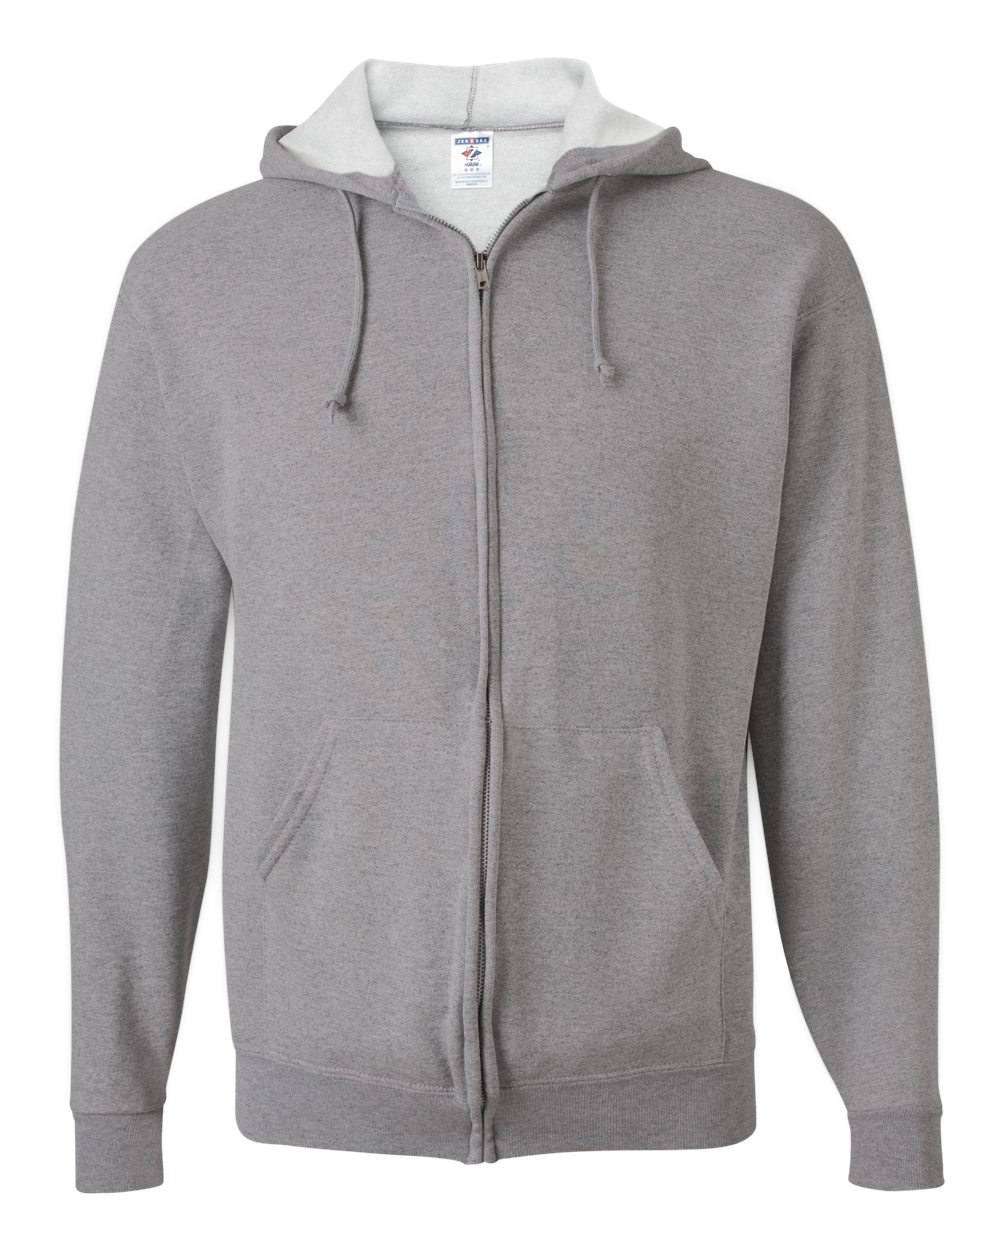 Picture of Jerzees Nublend Full-Zip Hooded Sweatshirt